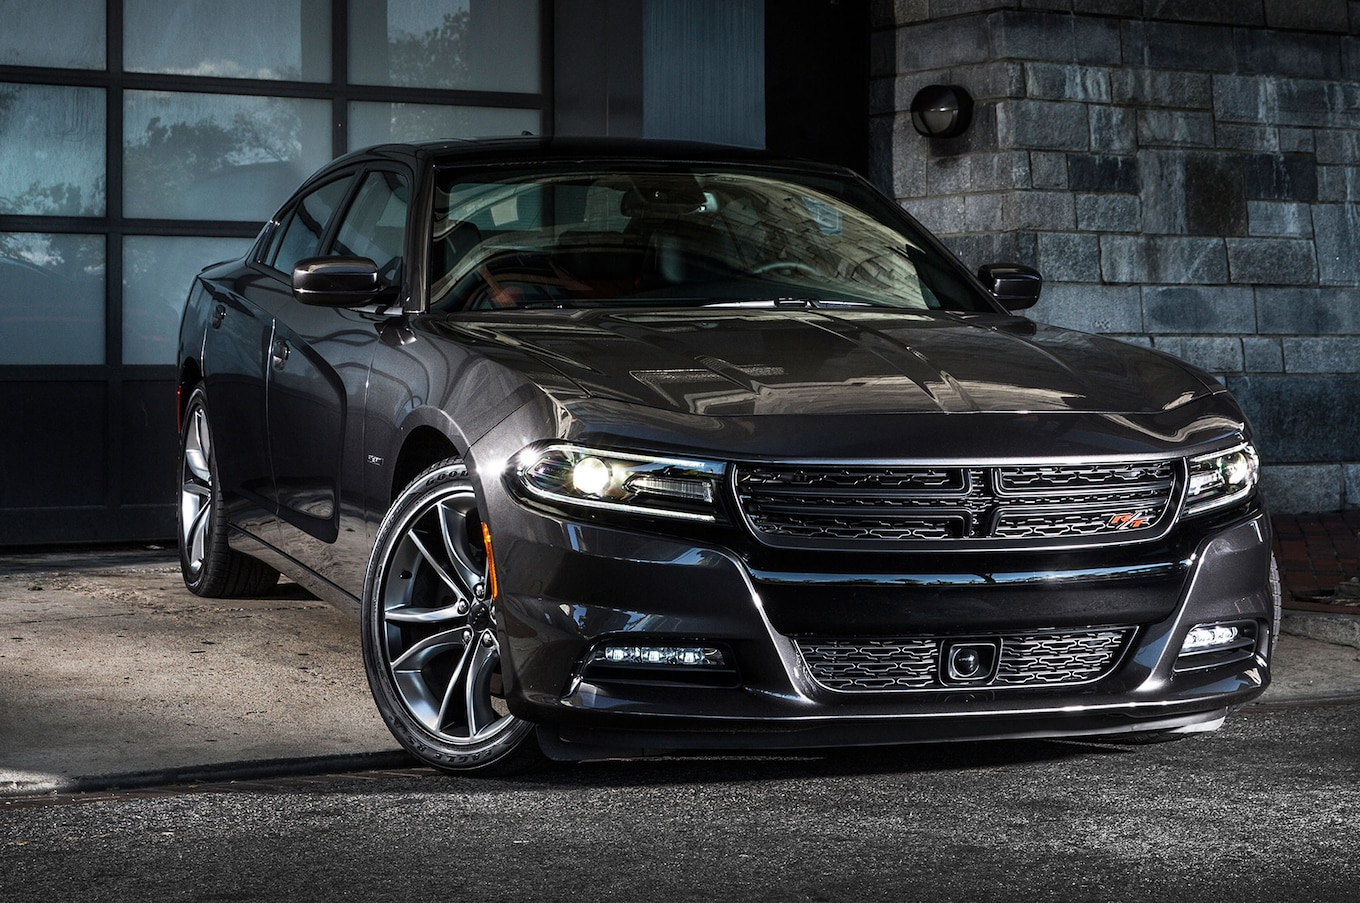 2015 Dodge Charger Reviews And Rating Motortrend